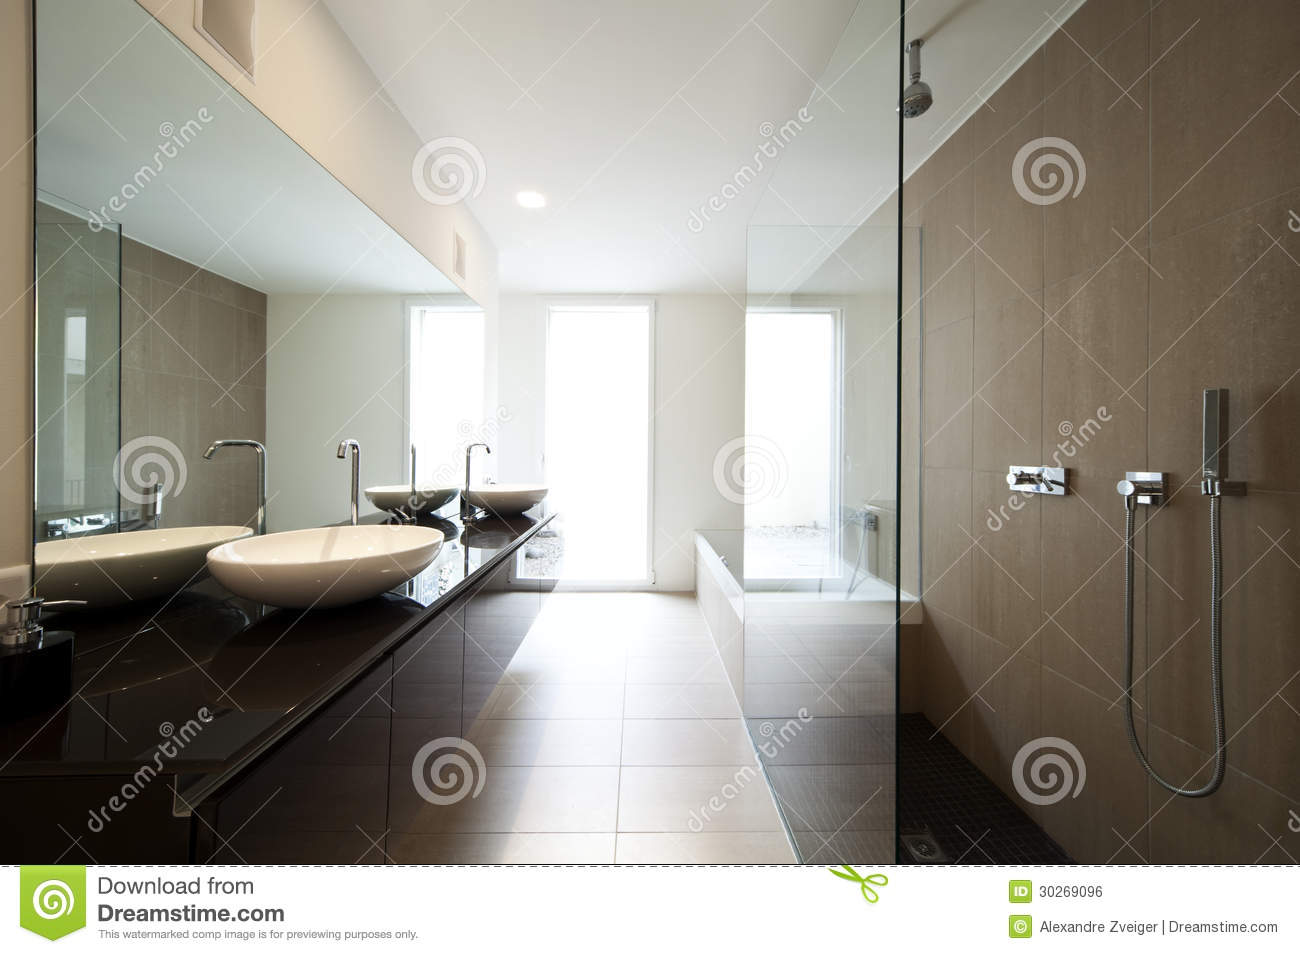 Tod Im Badezimmer Modern House Interior Stock Photo Image Of Inside Clean